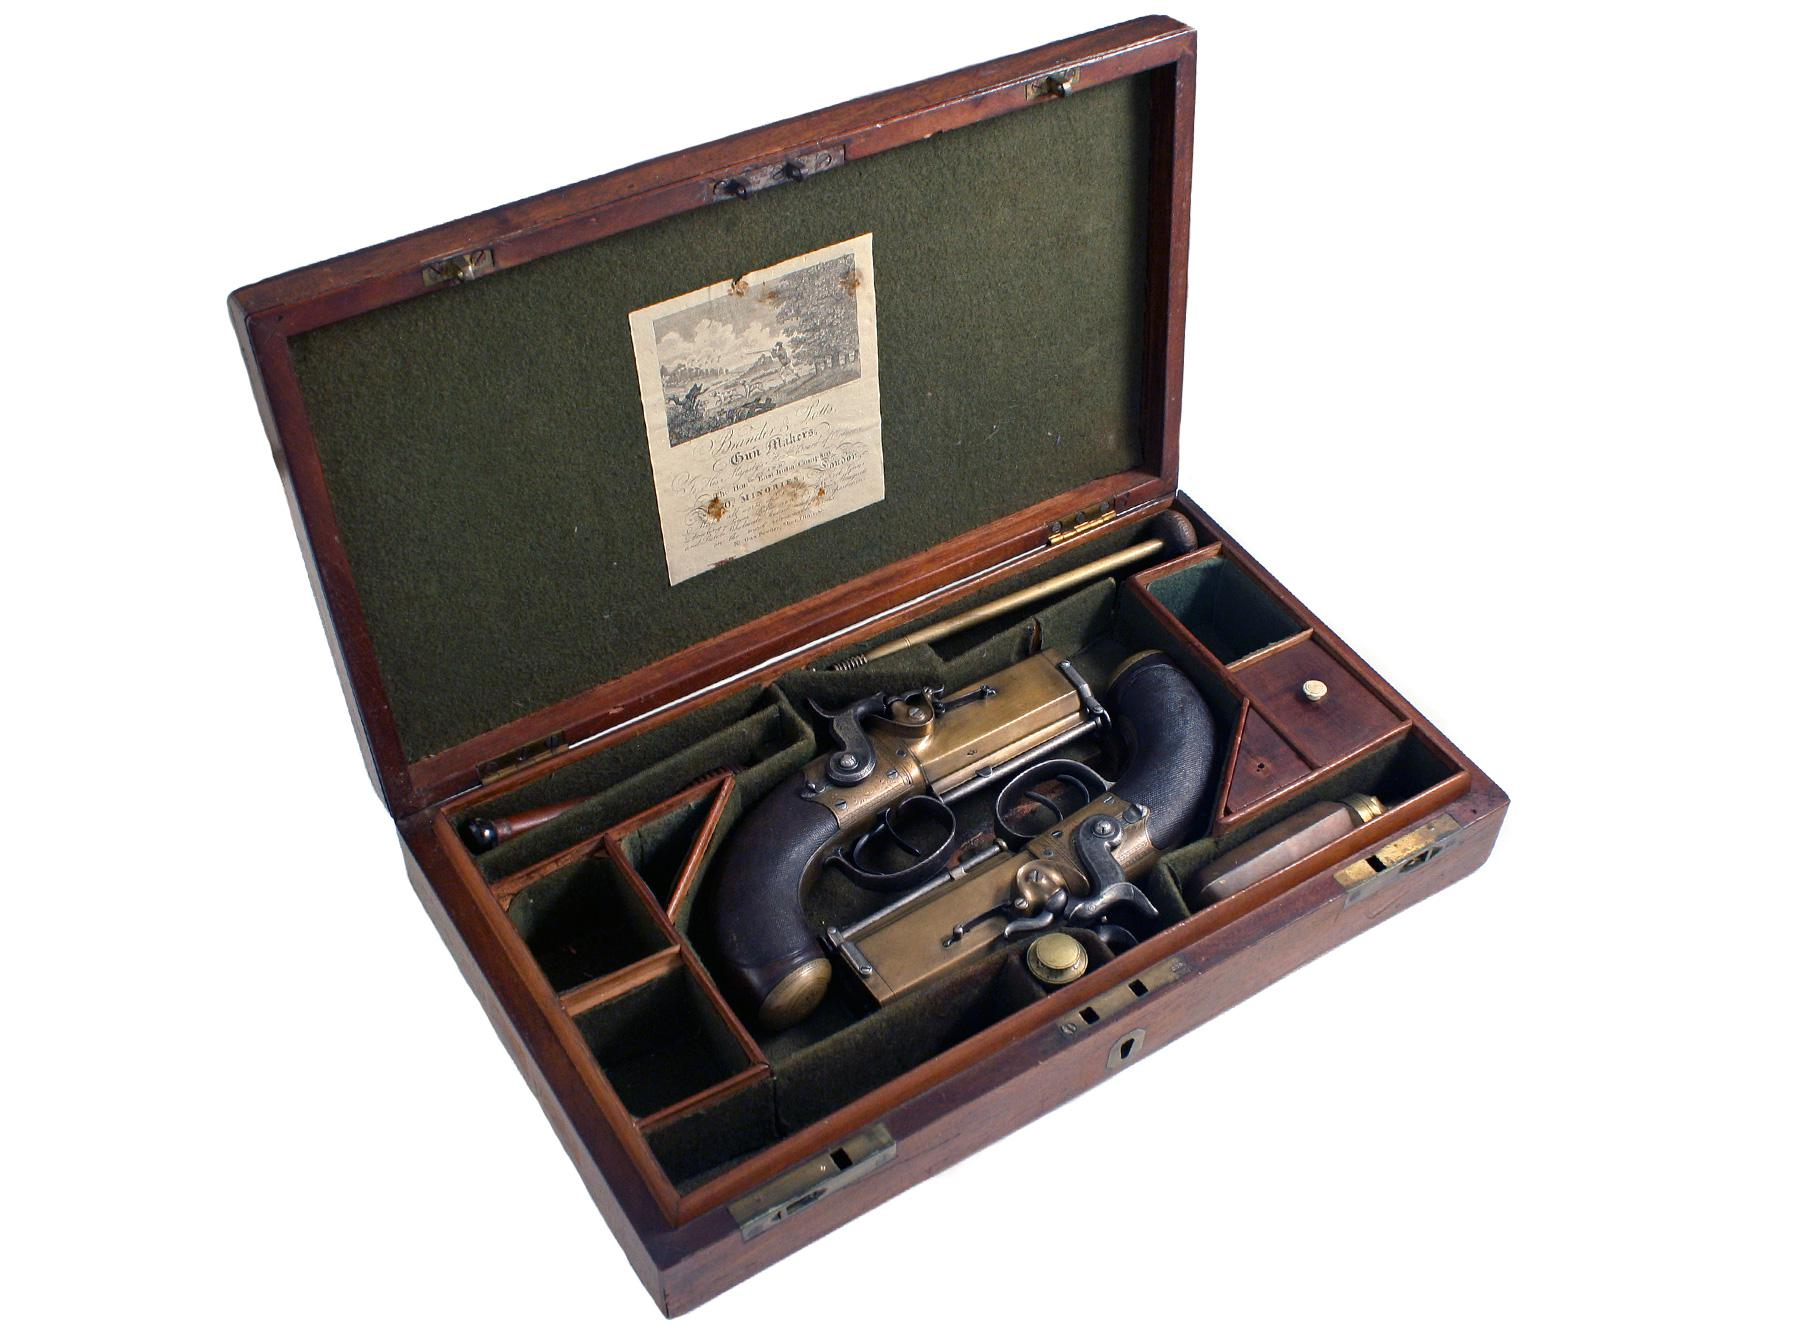 A Cased Pair of Over & Under Pistols